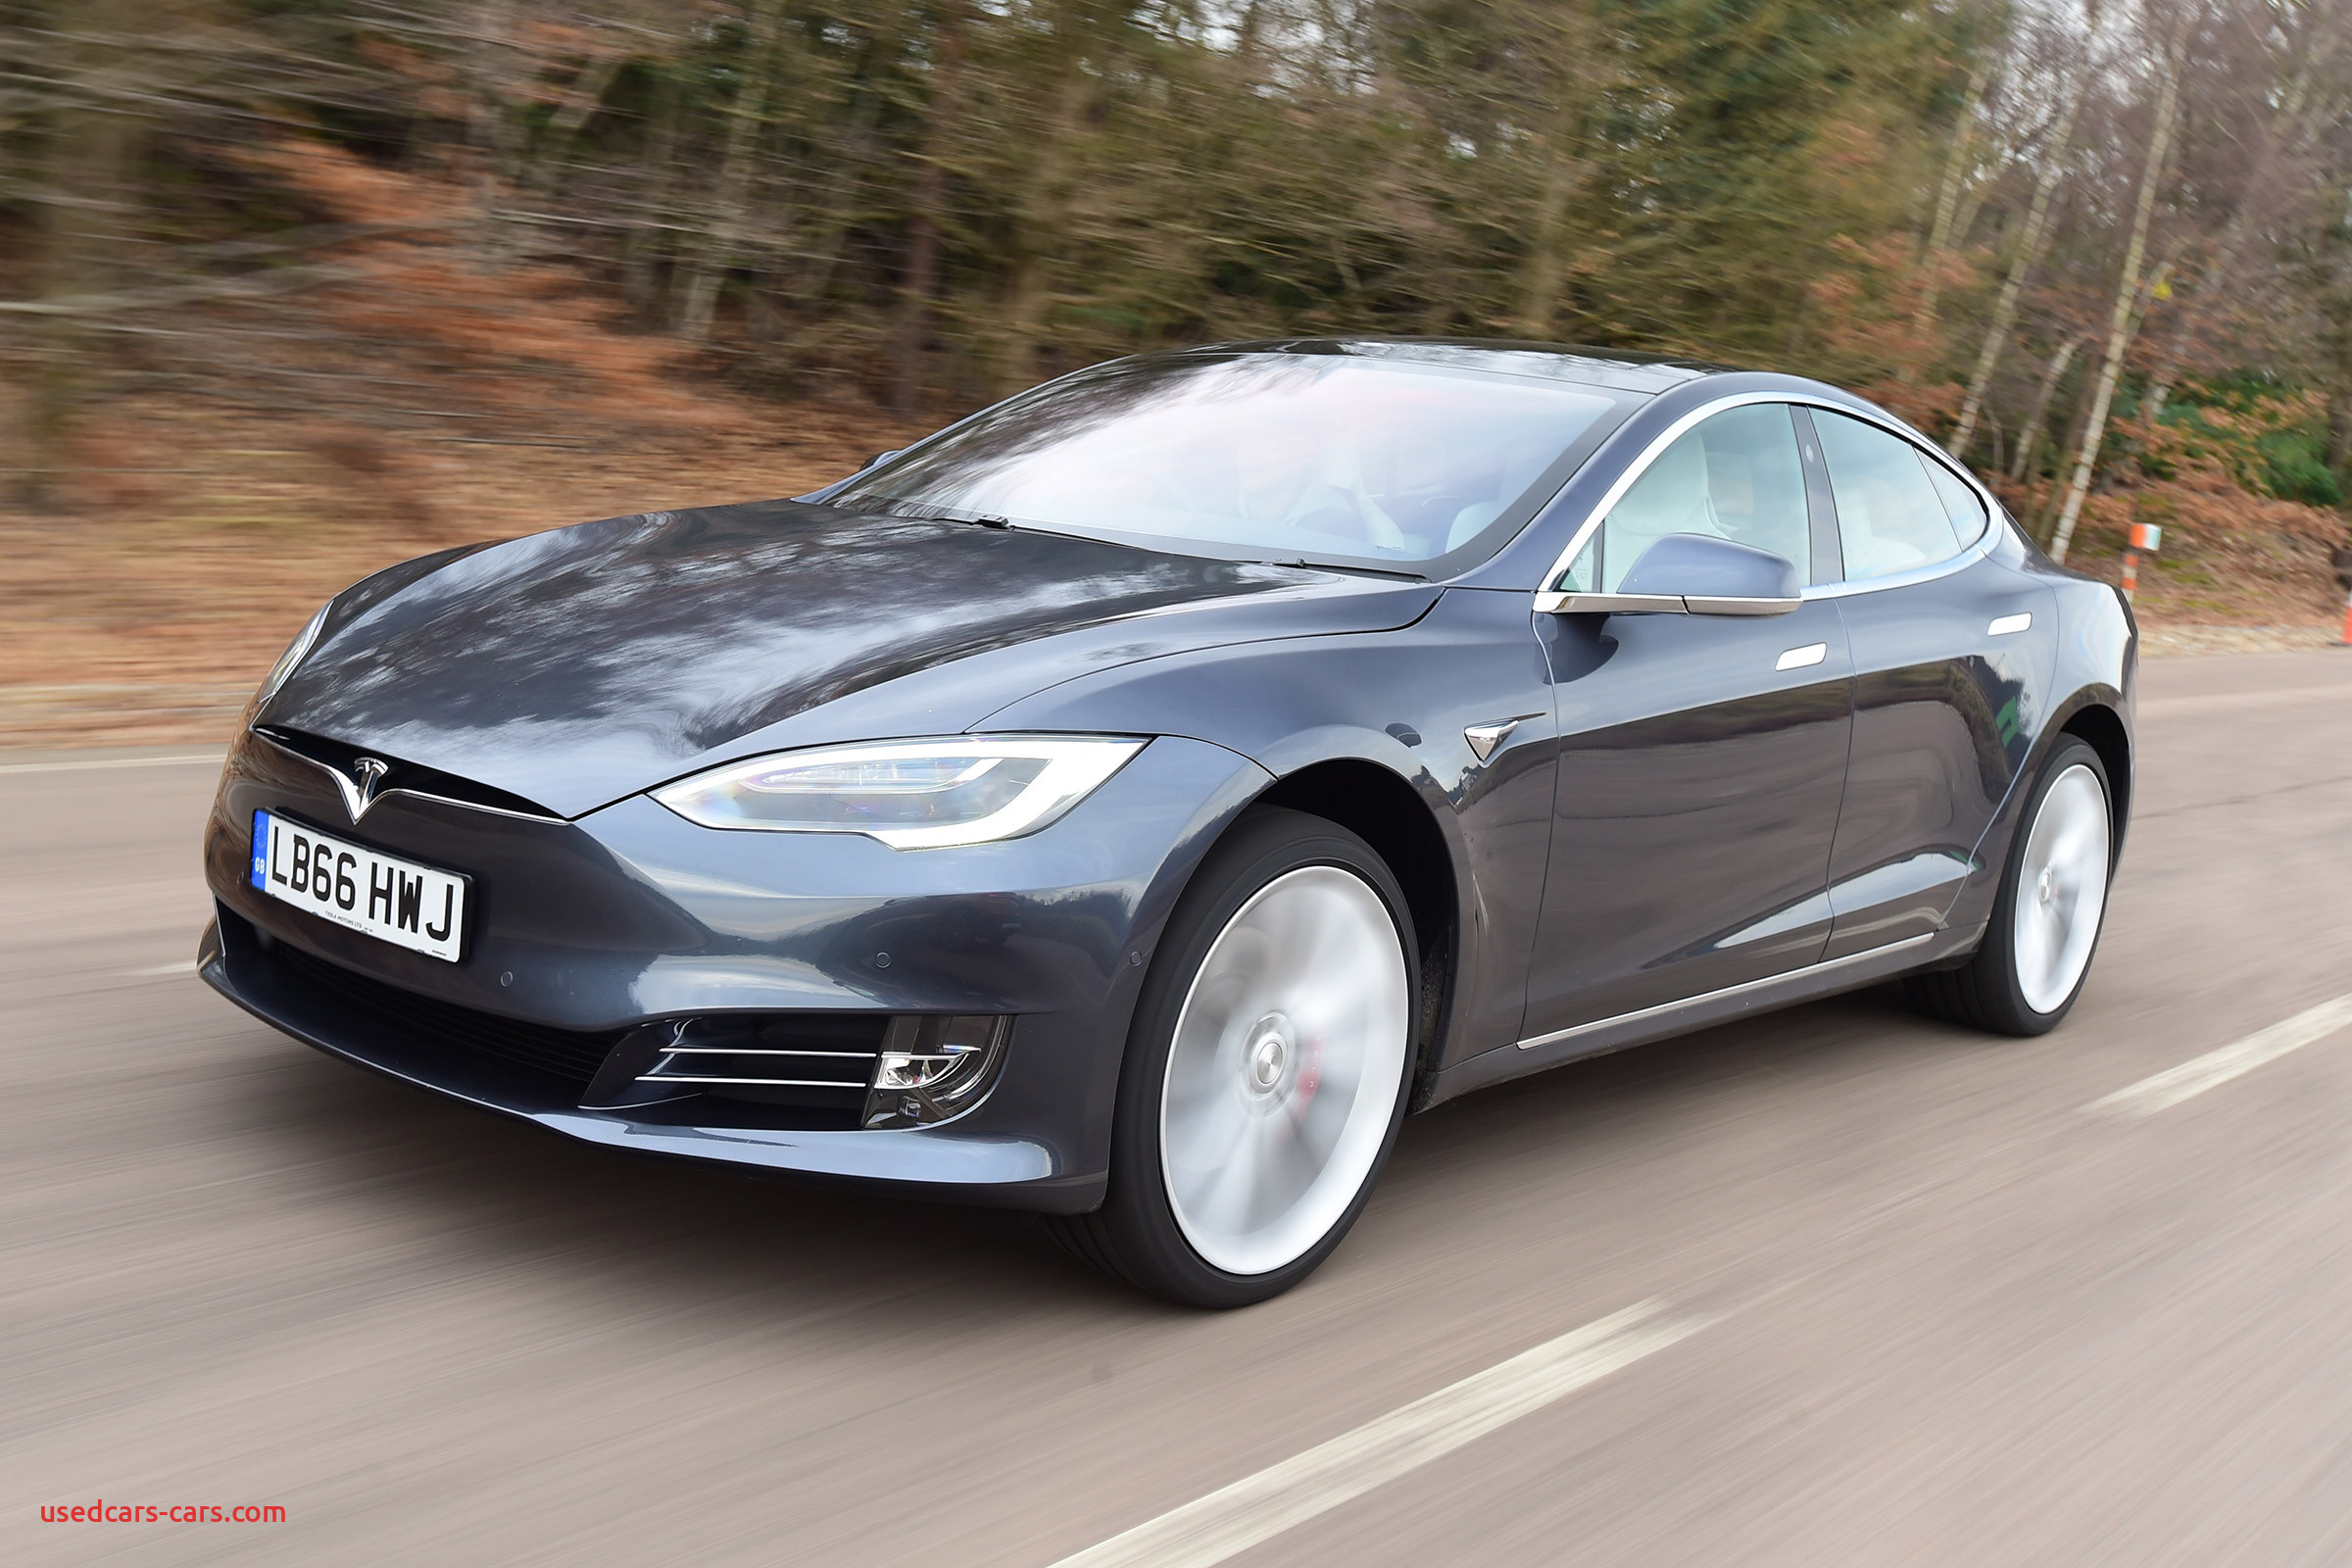 Are Tesla Cars All Electric Best Of Tesla Model S Best Electric Cars Best Electric Cars to